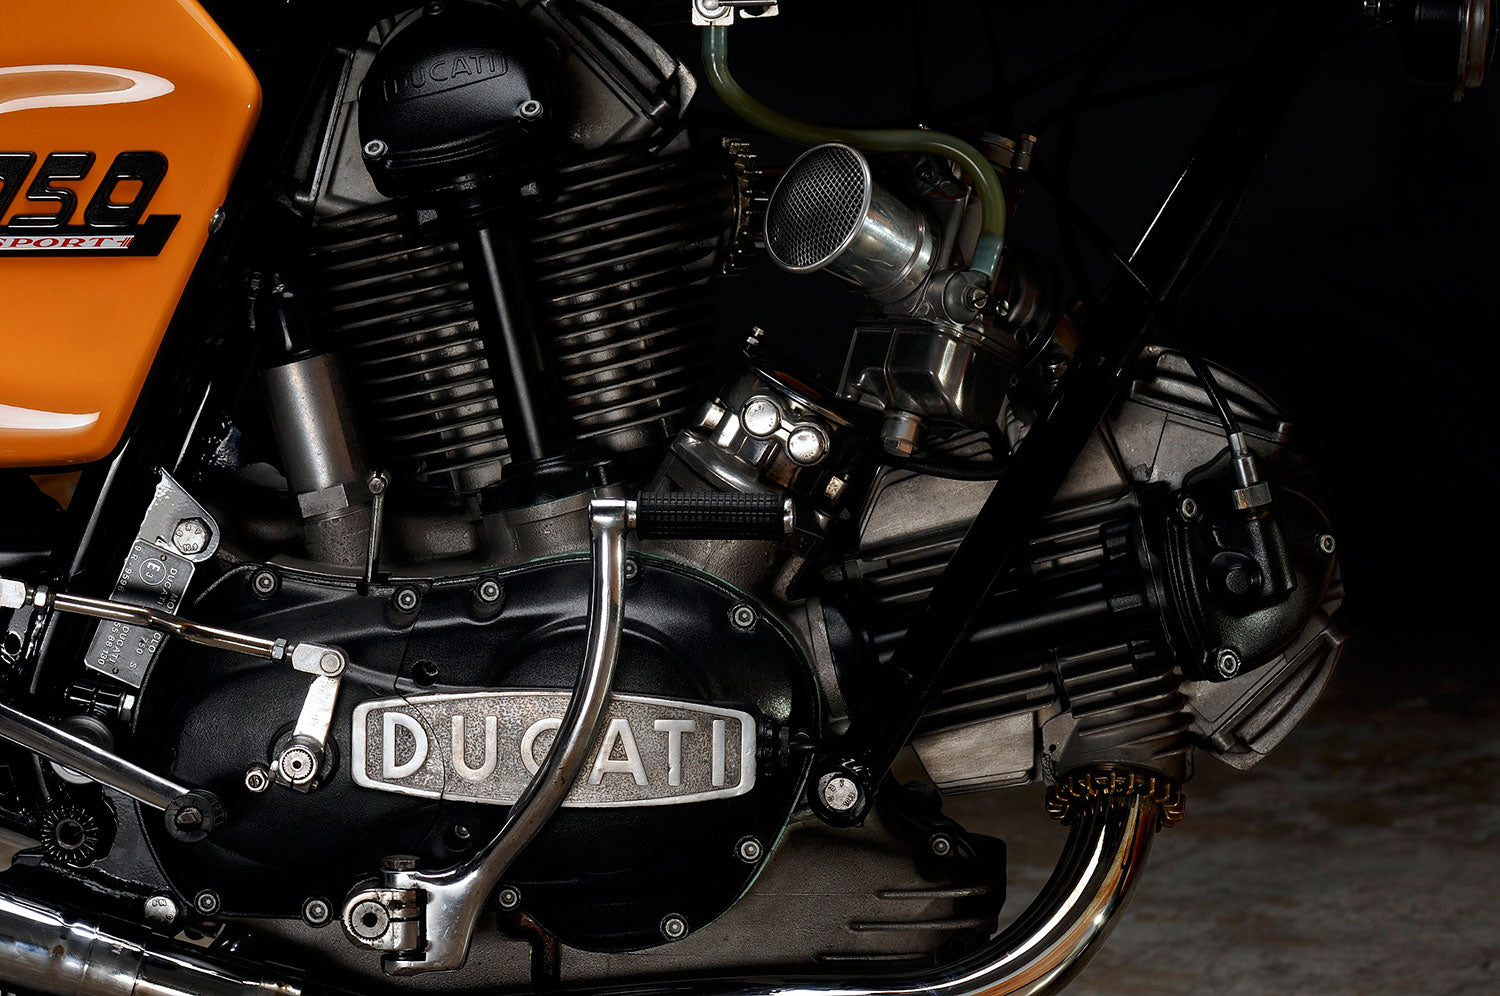 Revival Cycles Custom Build 1973 Ducati 750 Sport Hsus Darmah Wiring Loom Getting This Polished Legendary Roundcases Finishes Back To Factory Spec And Perfect Wasnt Easy